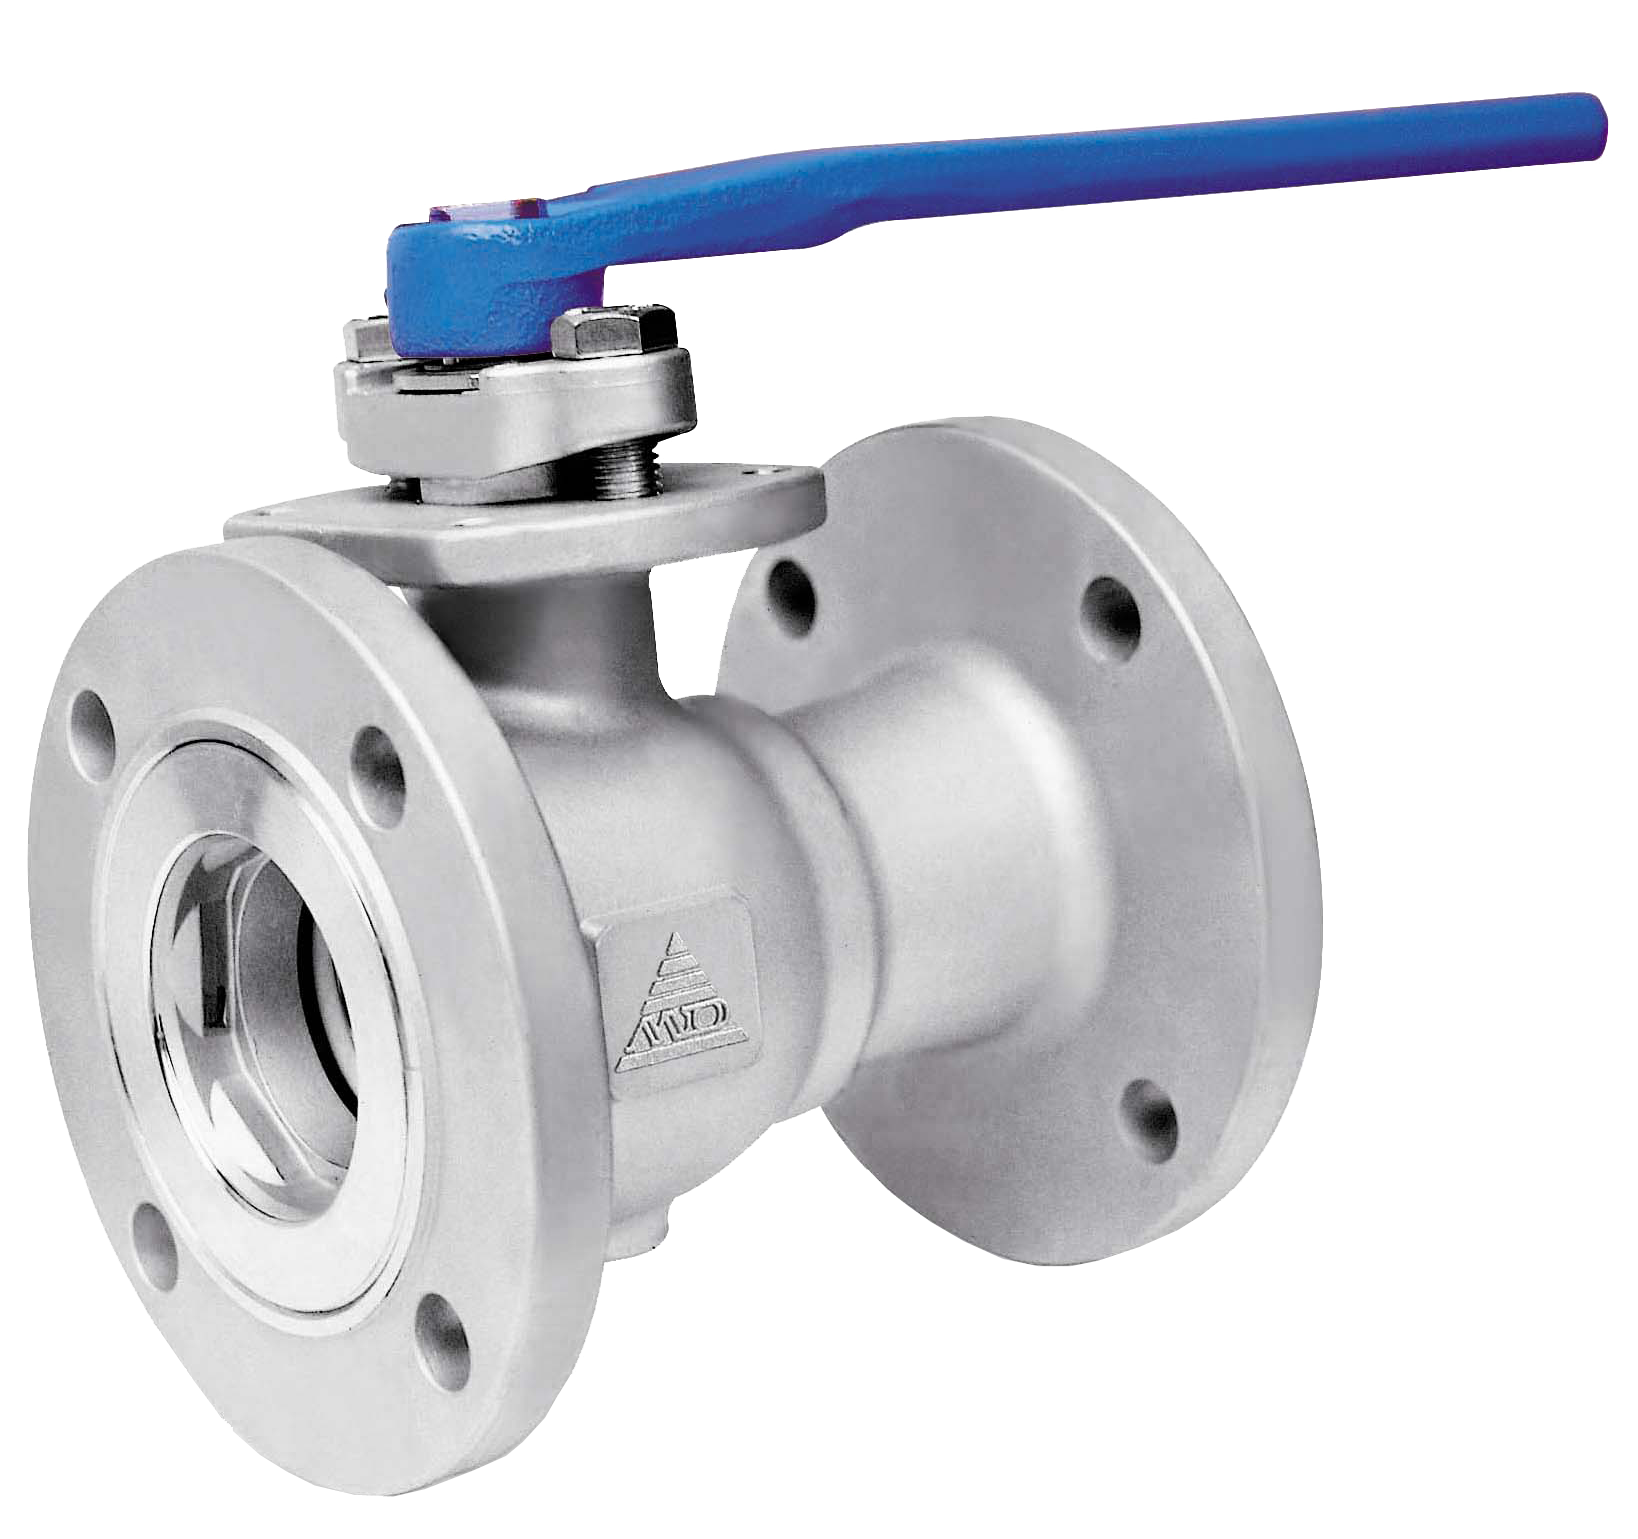 1pcs reduced ball valve 300# fire safe approved MD-51